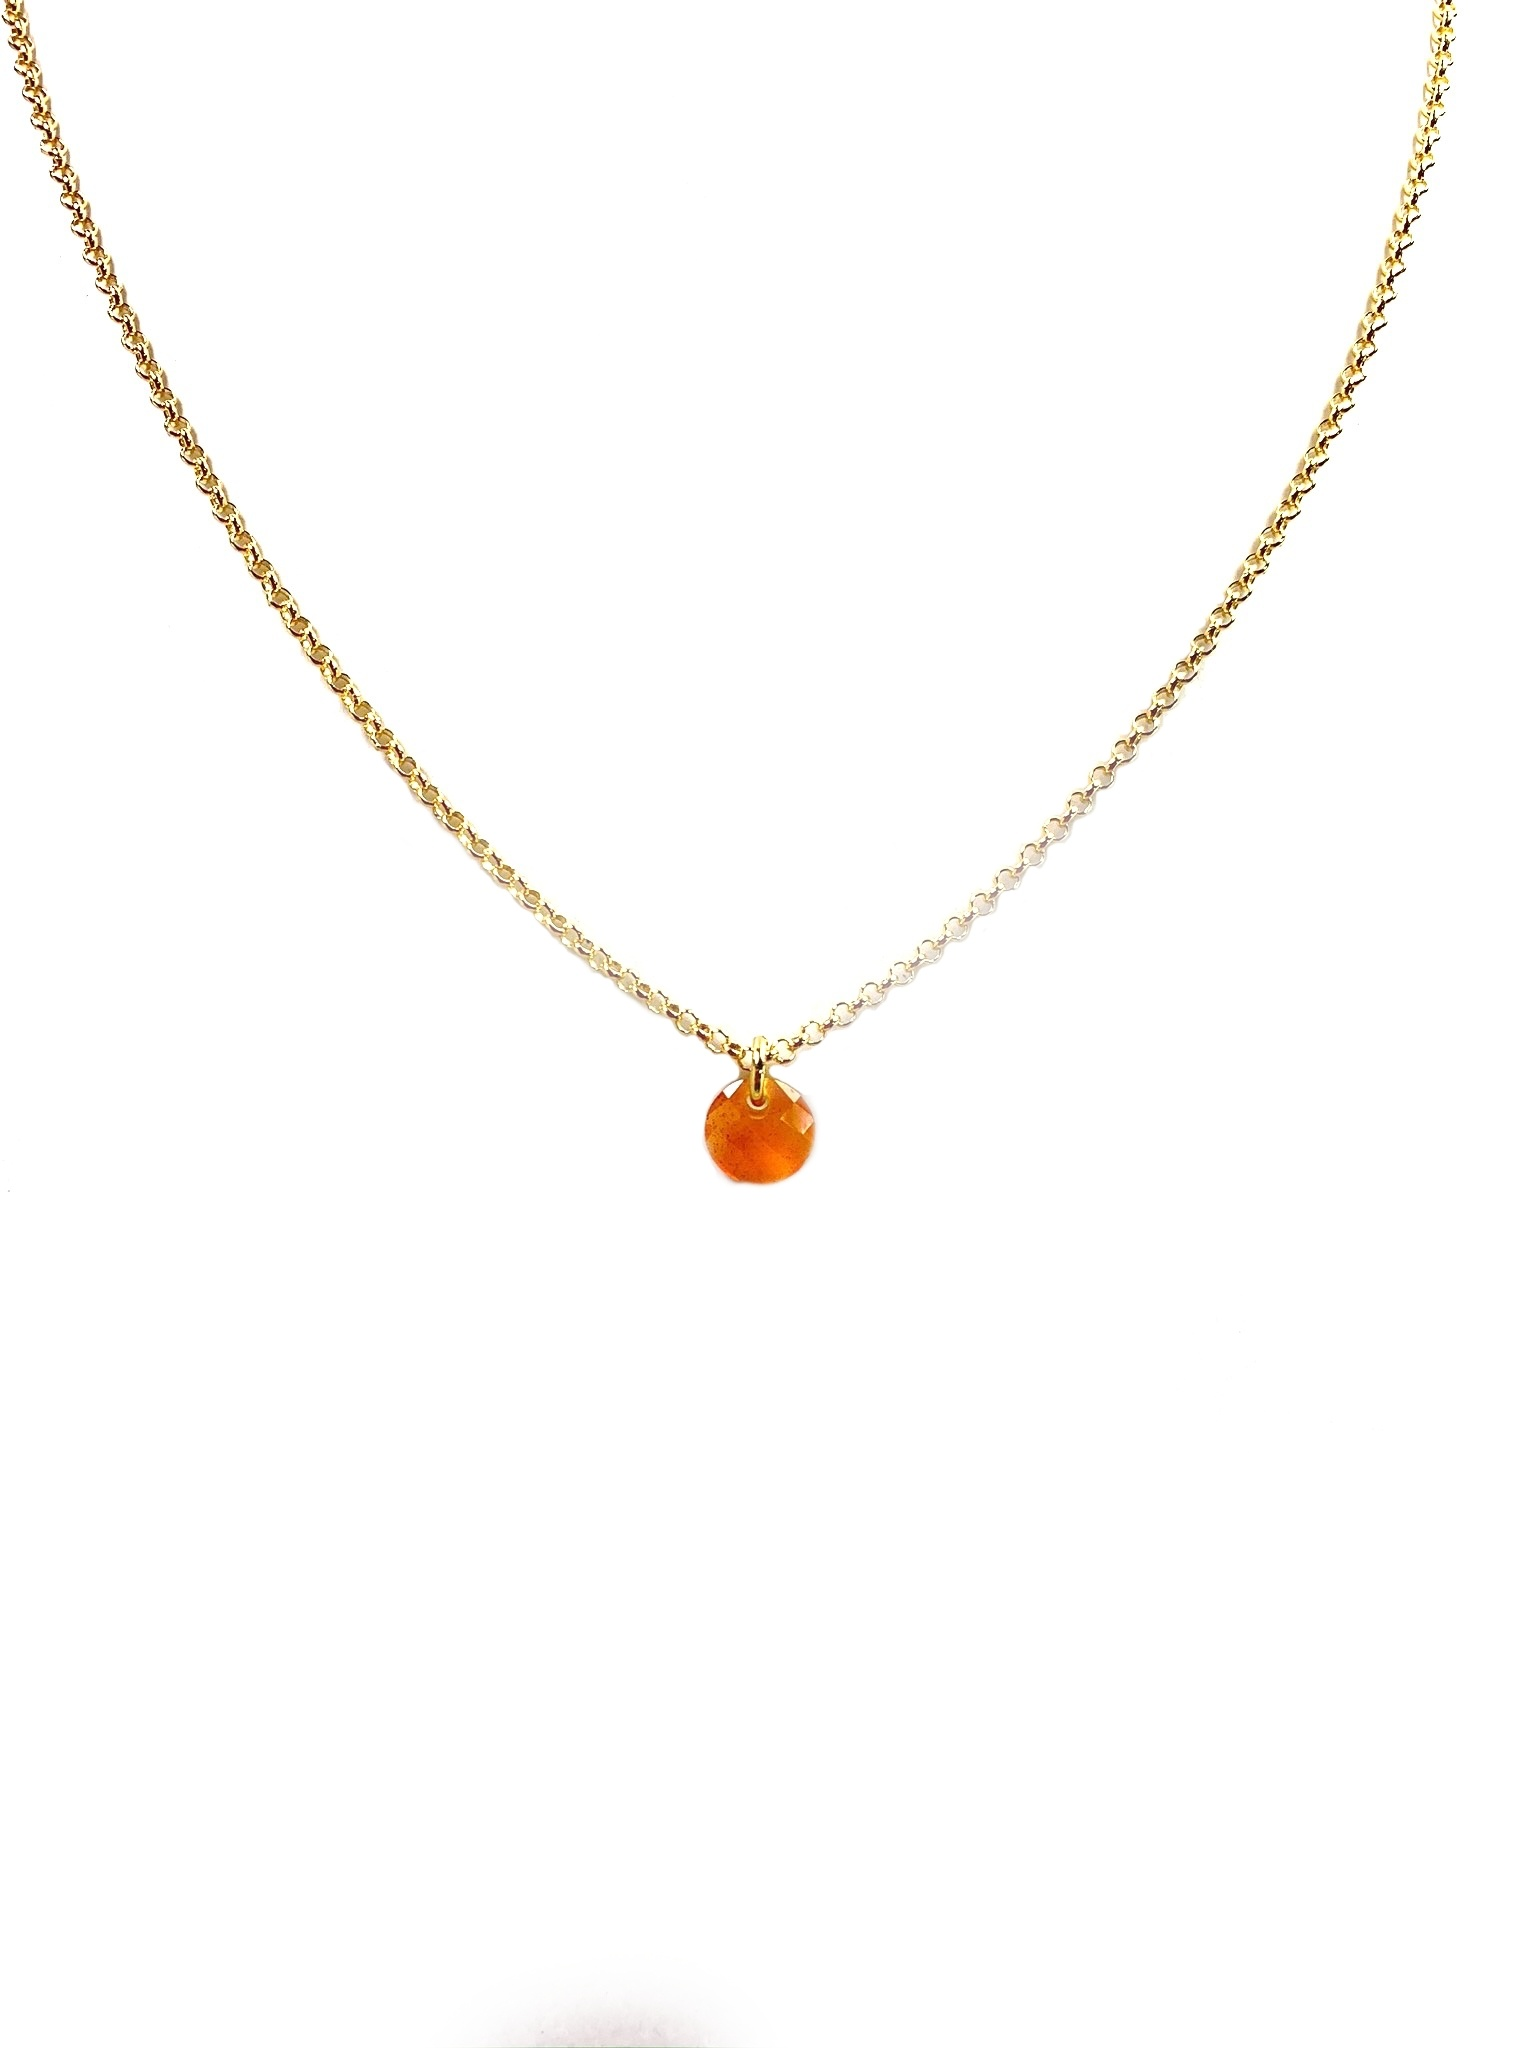 Kiliaan collectie Necklace and pendant delicate facetted carnelian